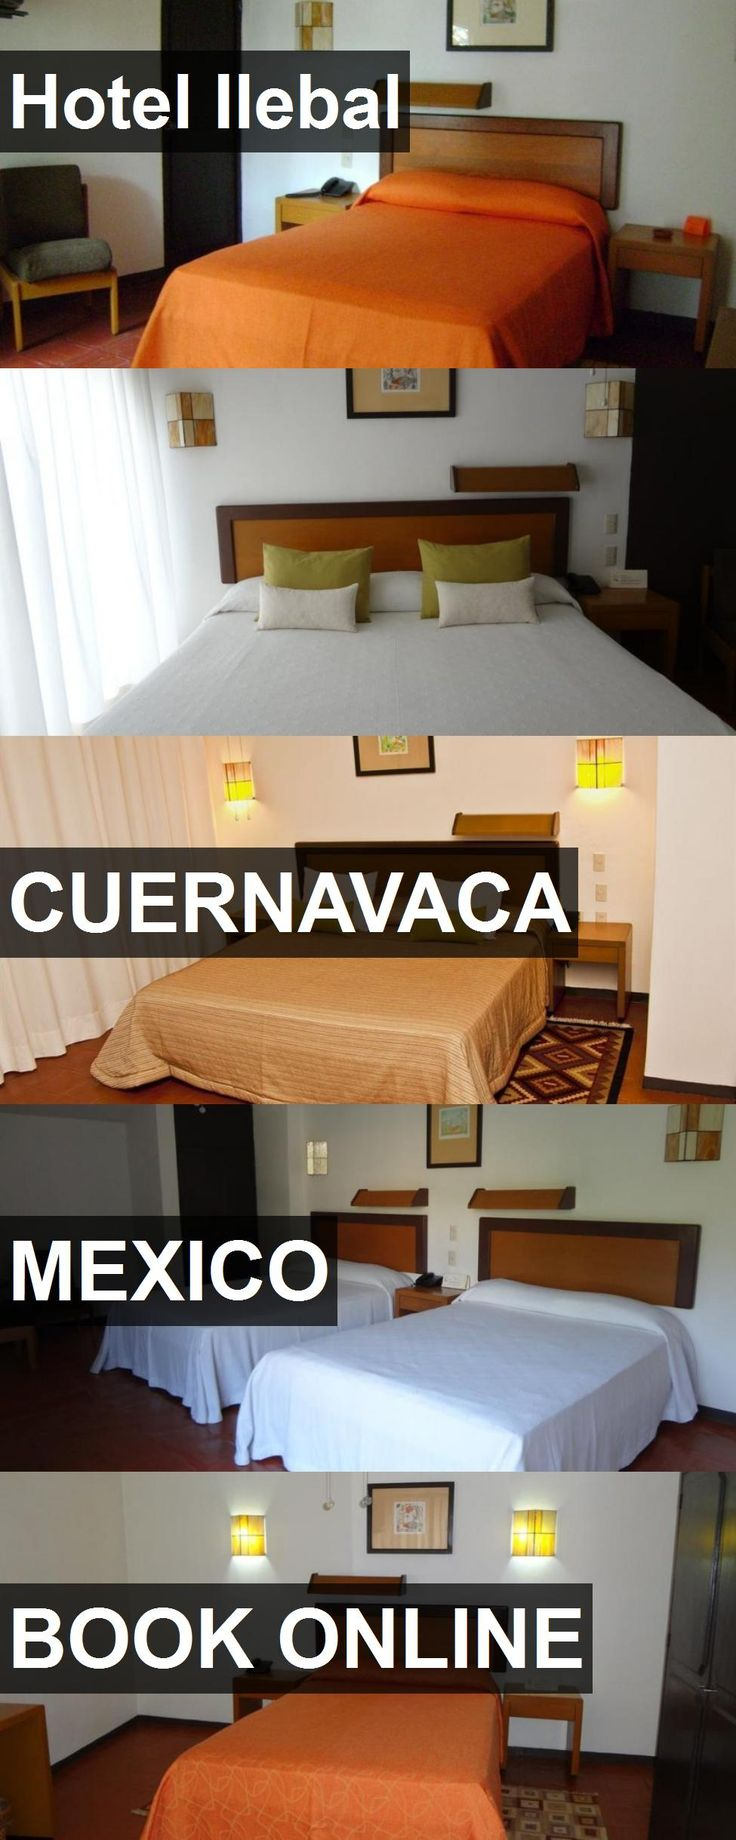 Hotel Ilebal in Cuernavaca, Mexico. For more information, photos, reviews and best prices please follow the link. #Mexico #Cuernavaca #travel #vacation #hotel